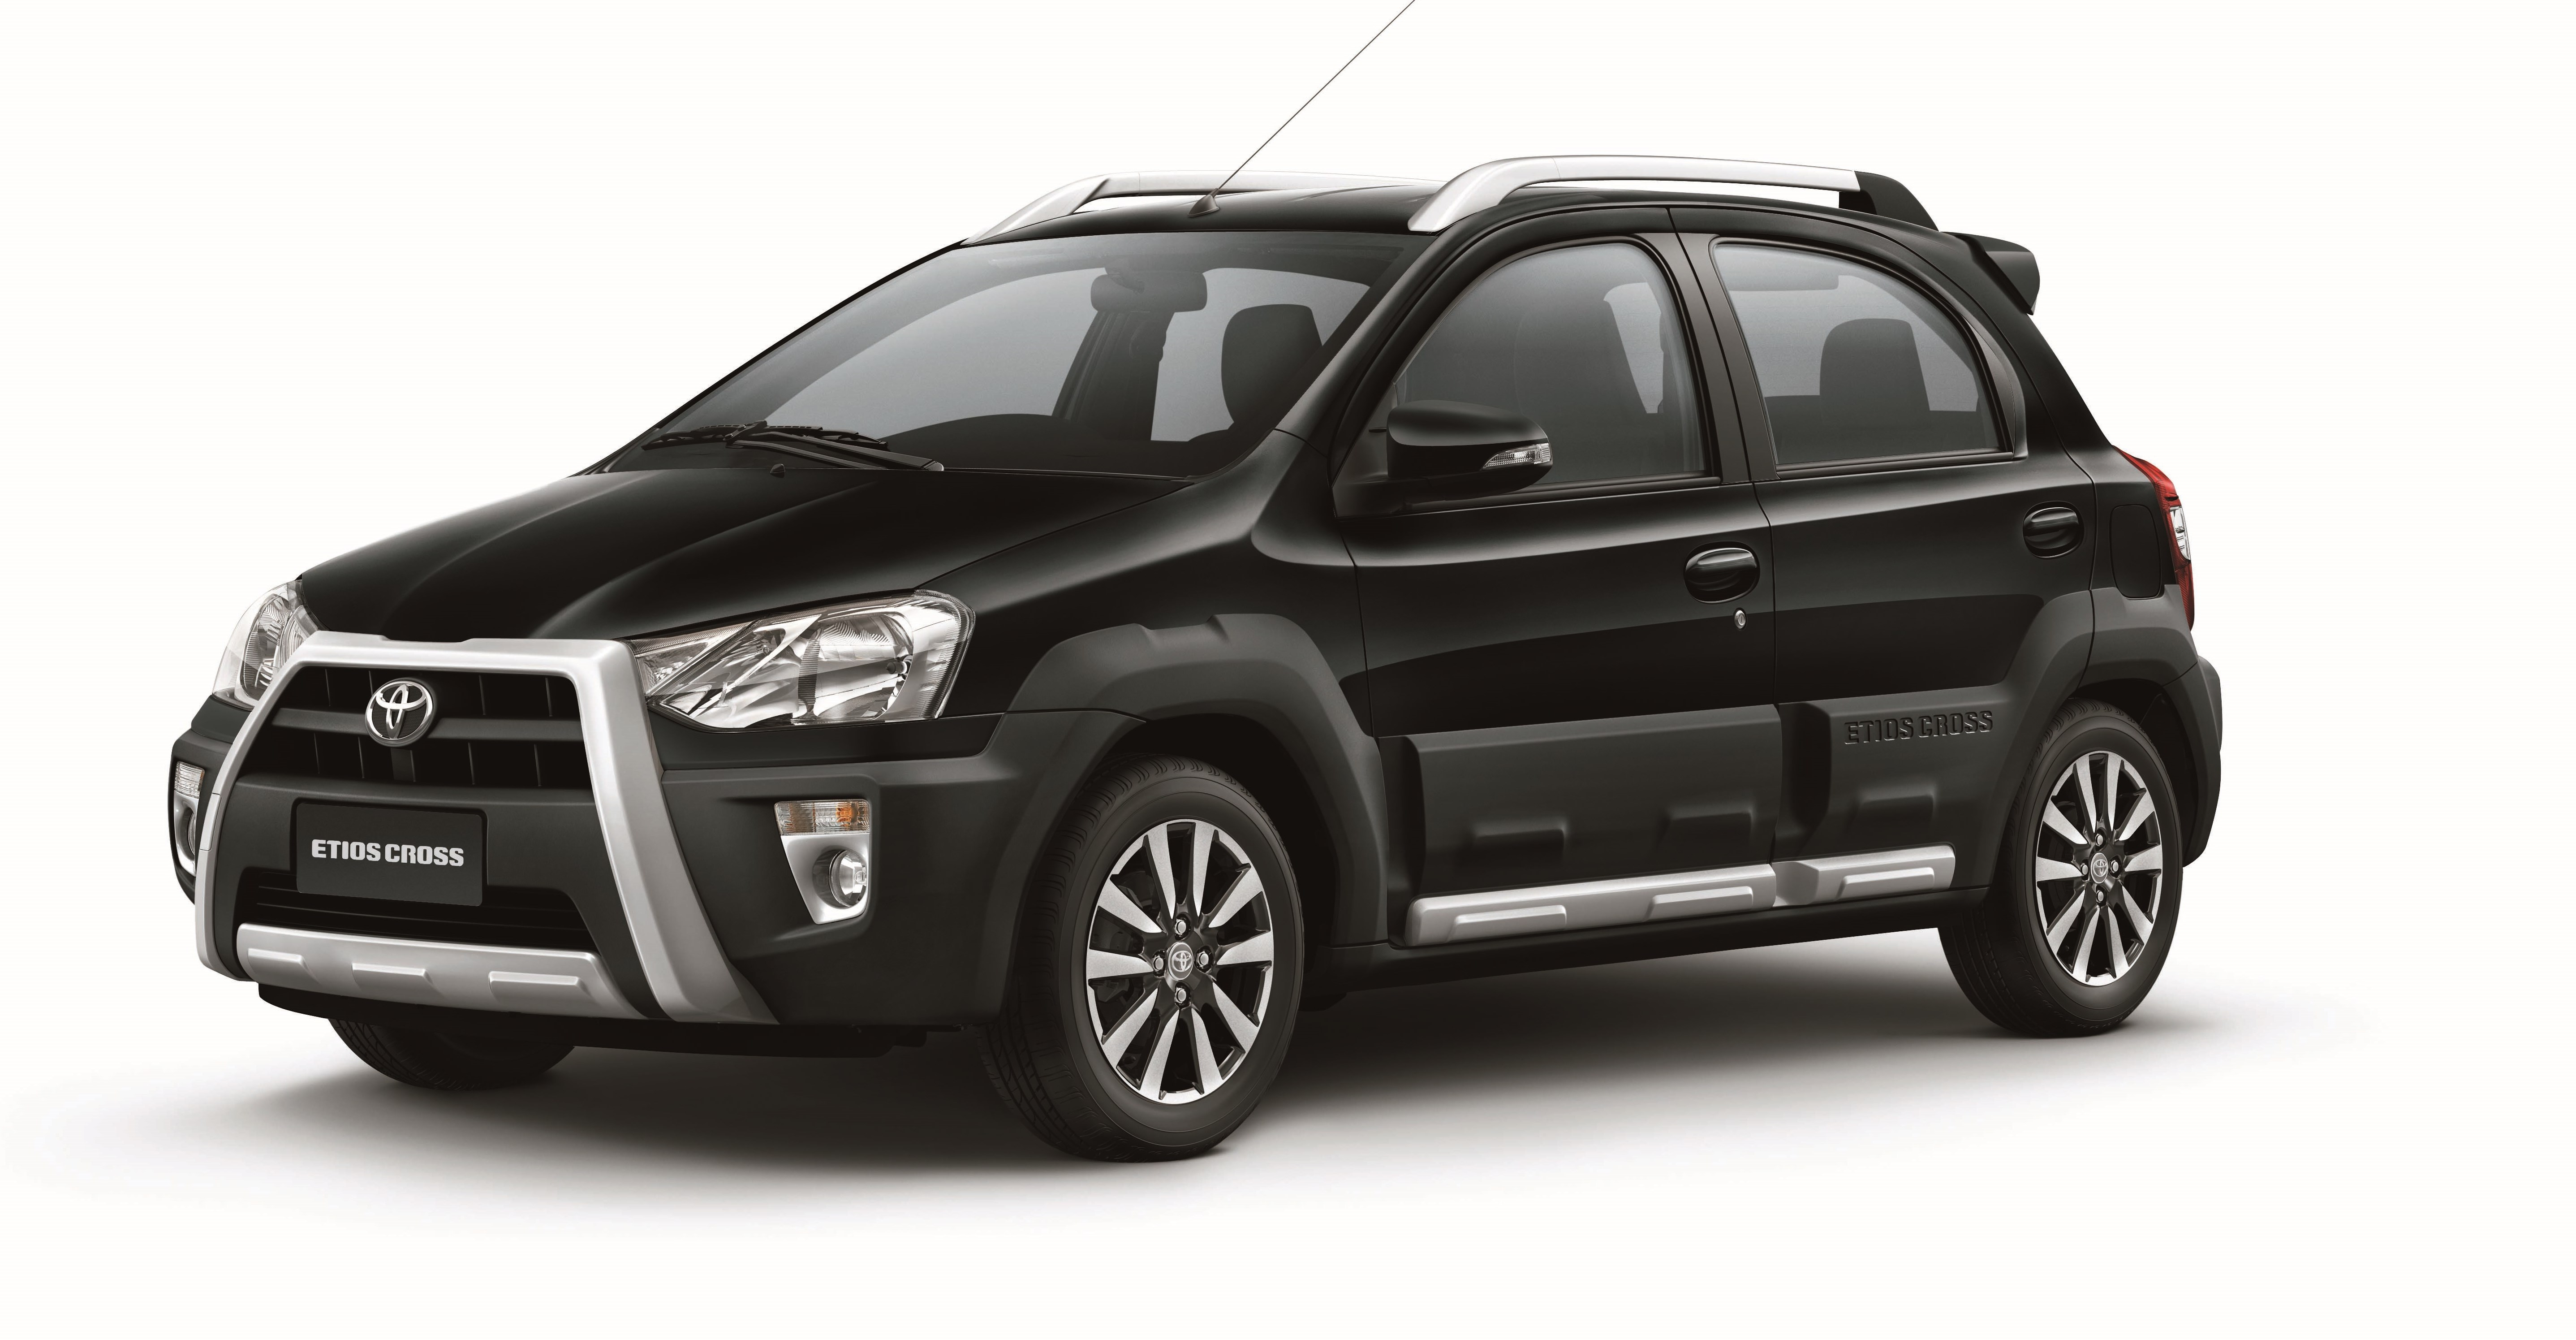 toyota etios cross launched in nepal - technonepal